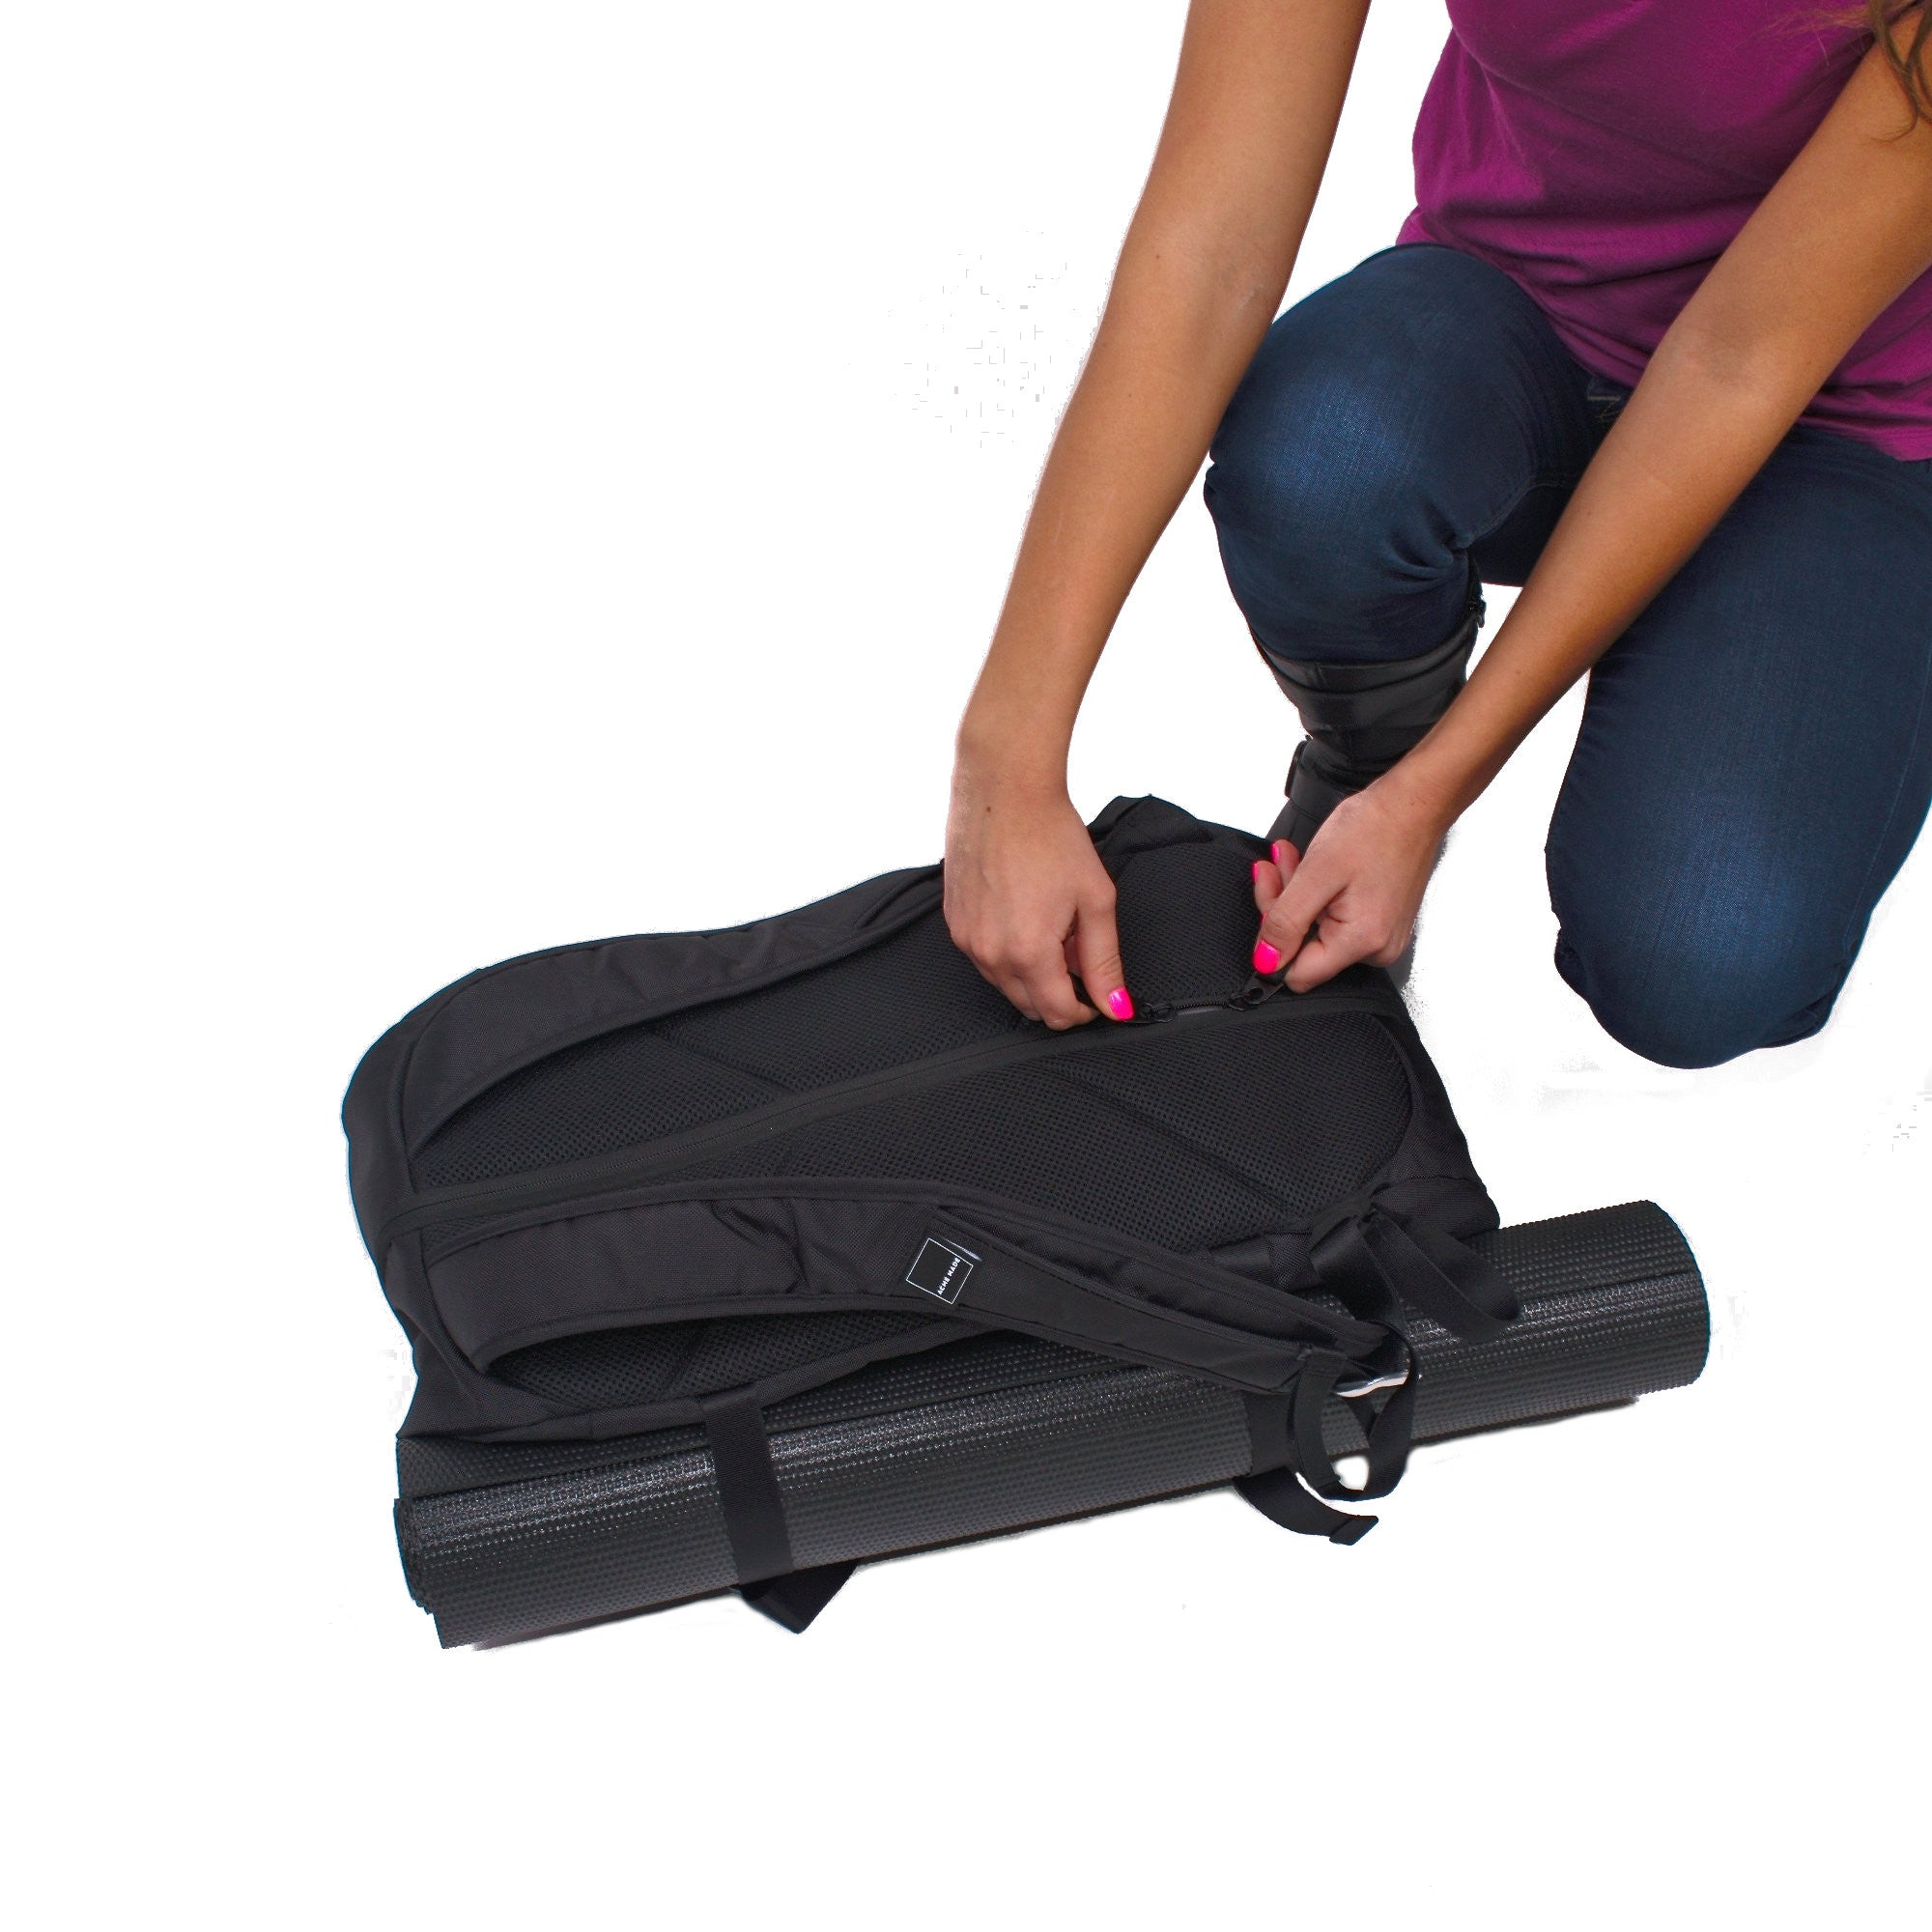 ... Stuffing Gym Clothes Into Bag · Union Street Gym Backpack Attaching  Yoga Mat 6f31777fc77c9